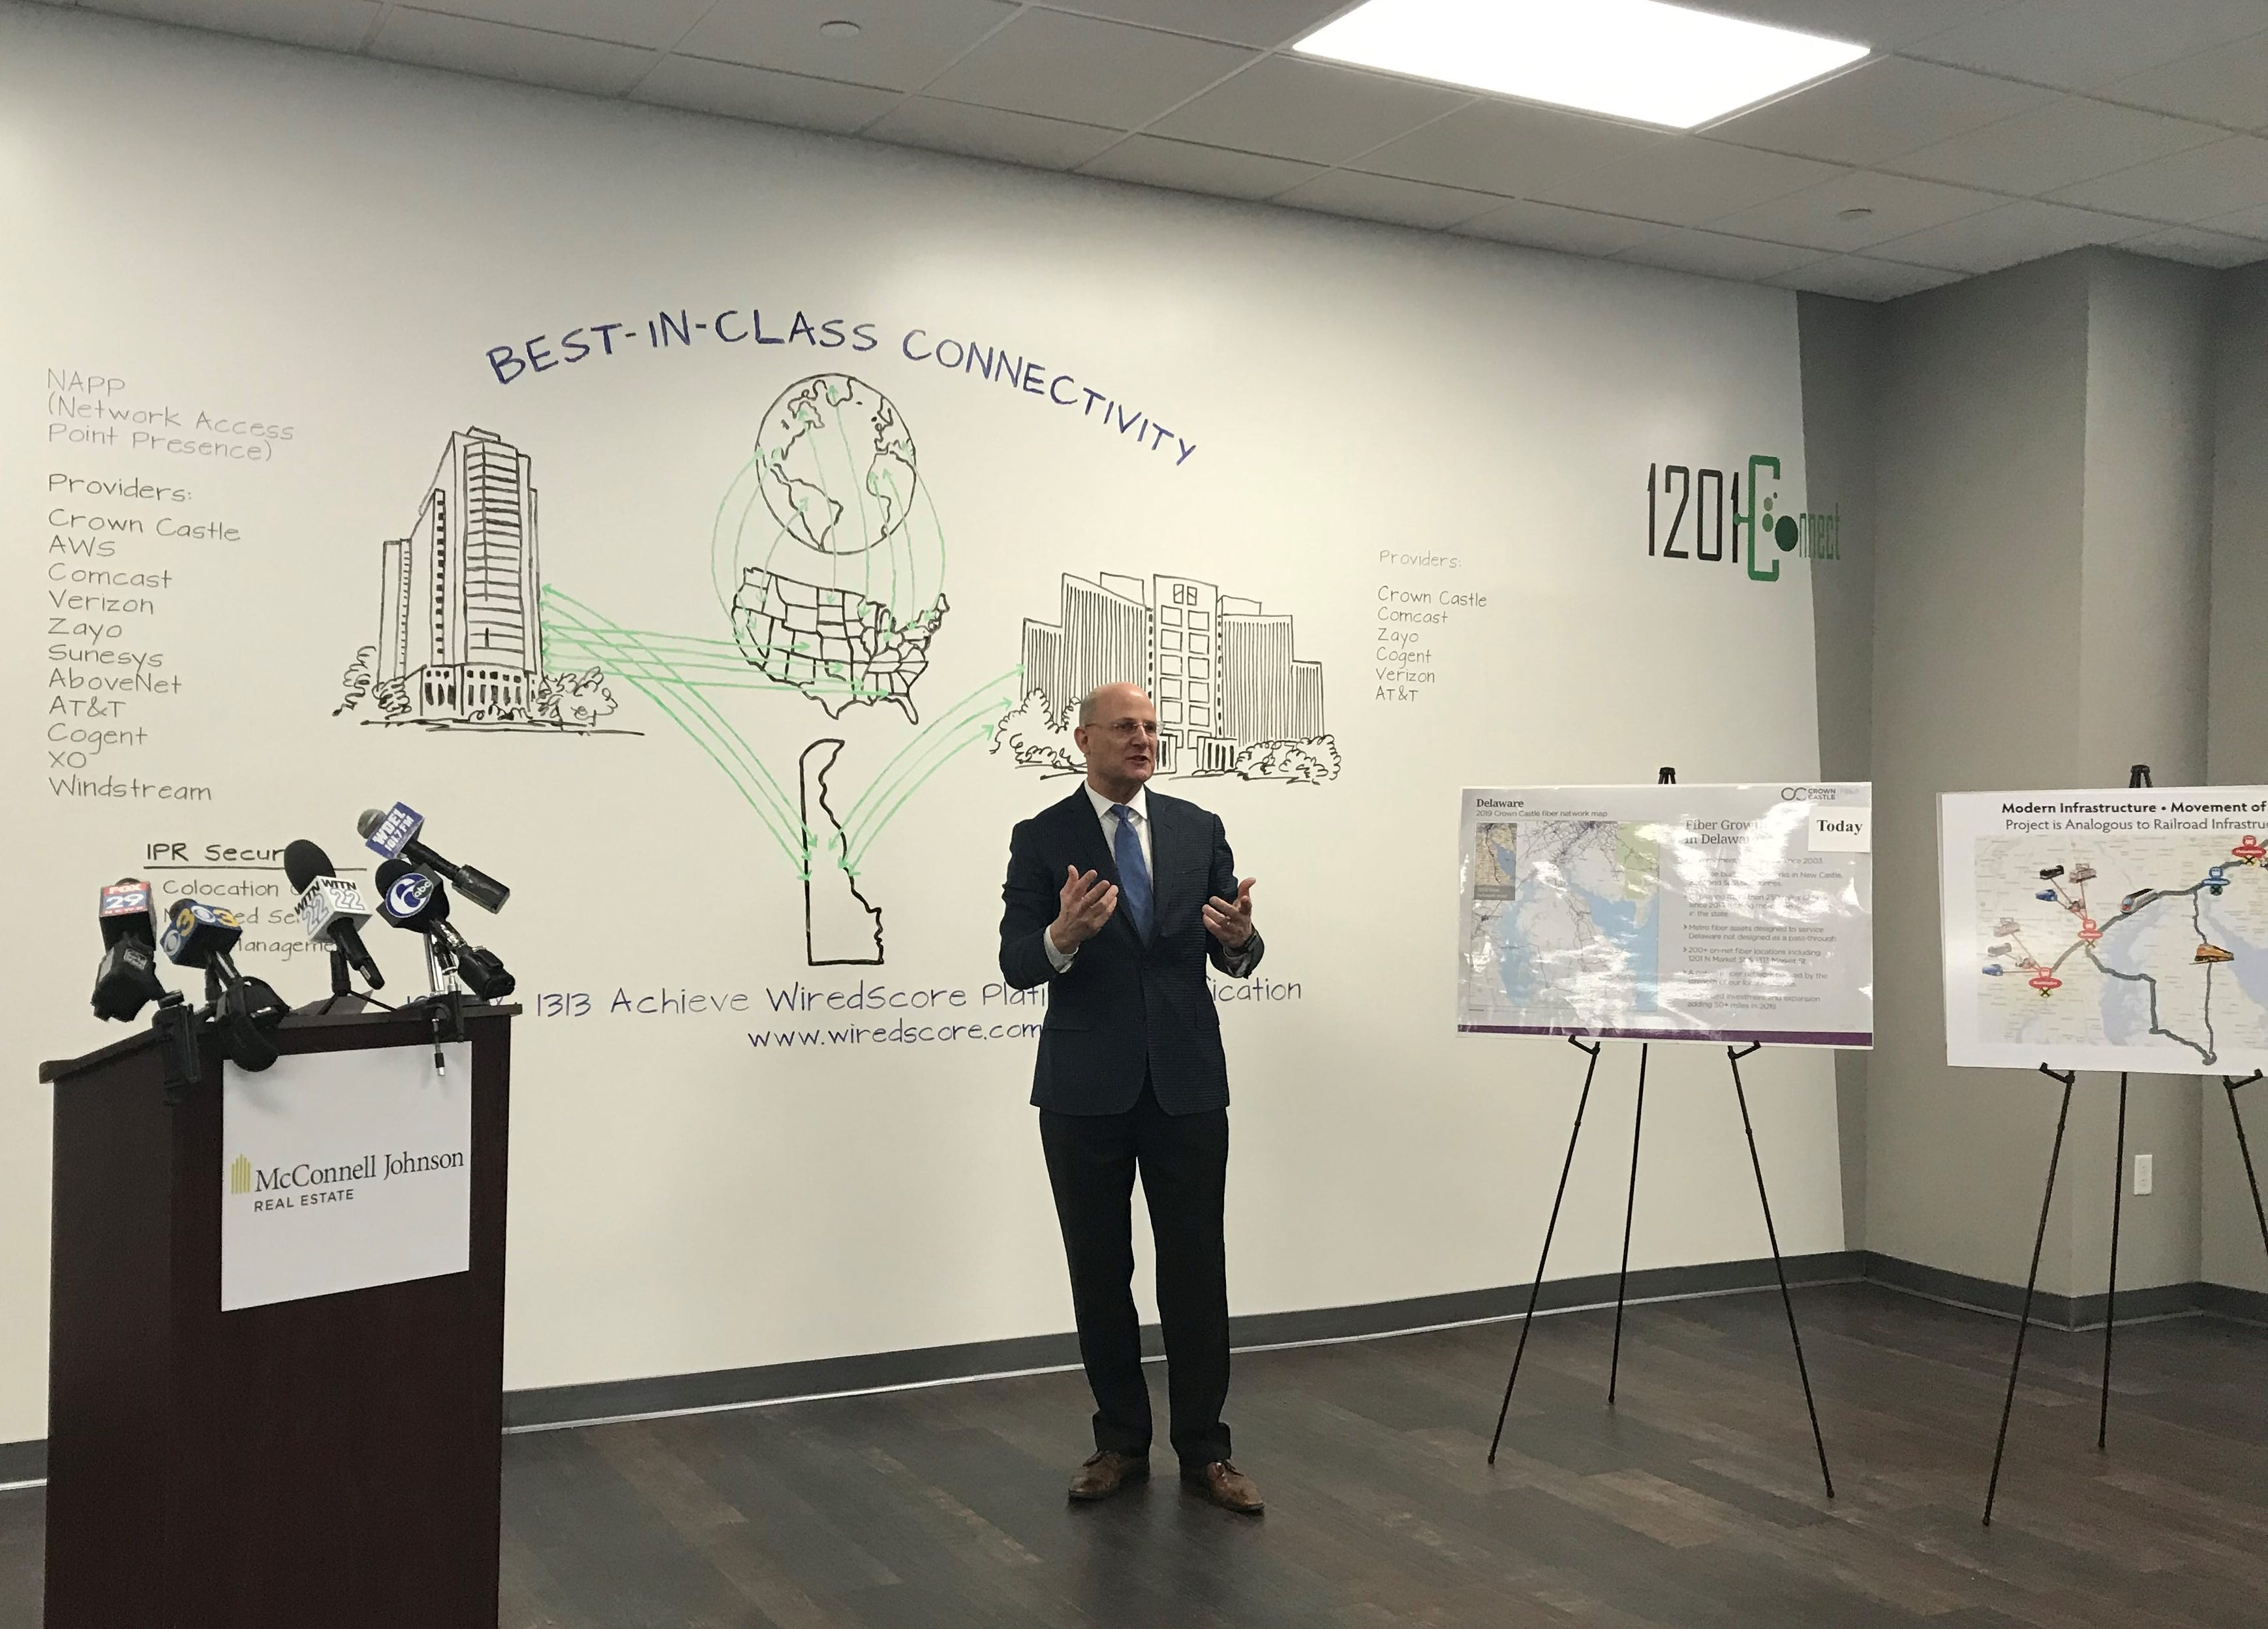 Scott Johnson of McConnell Johnson Real Estate talks about his downtown Wilmington buildings' Internet connectivity